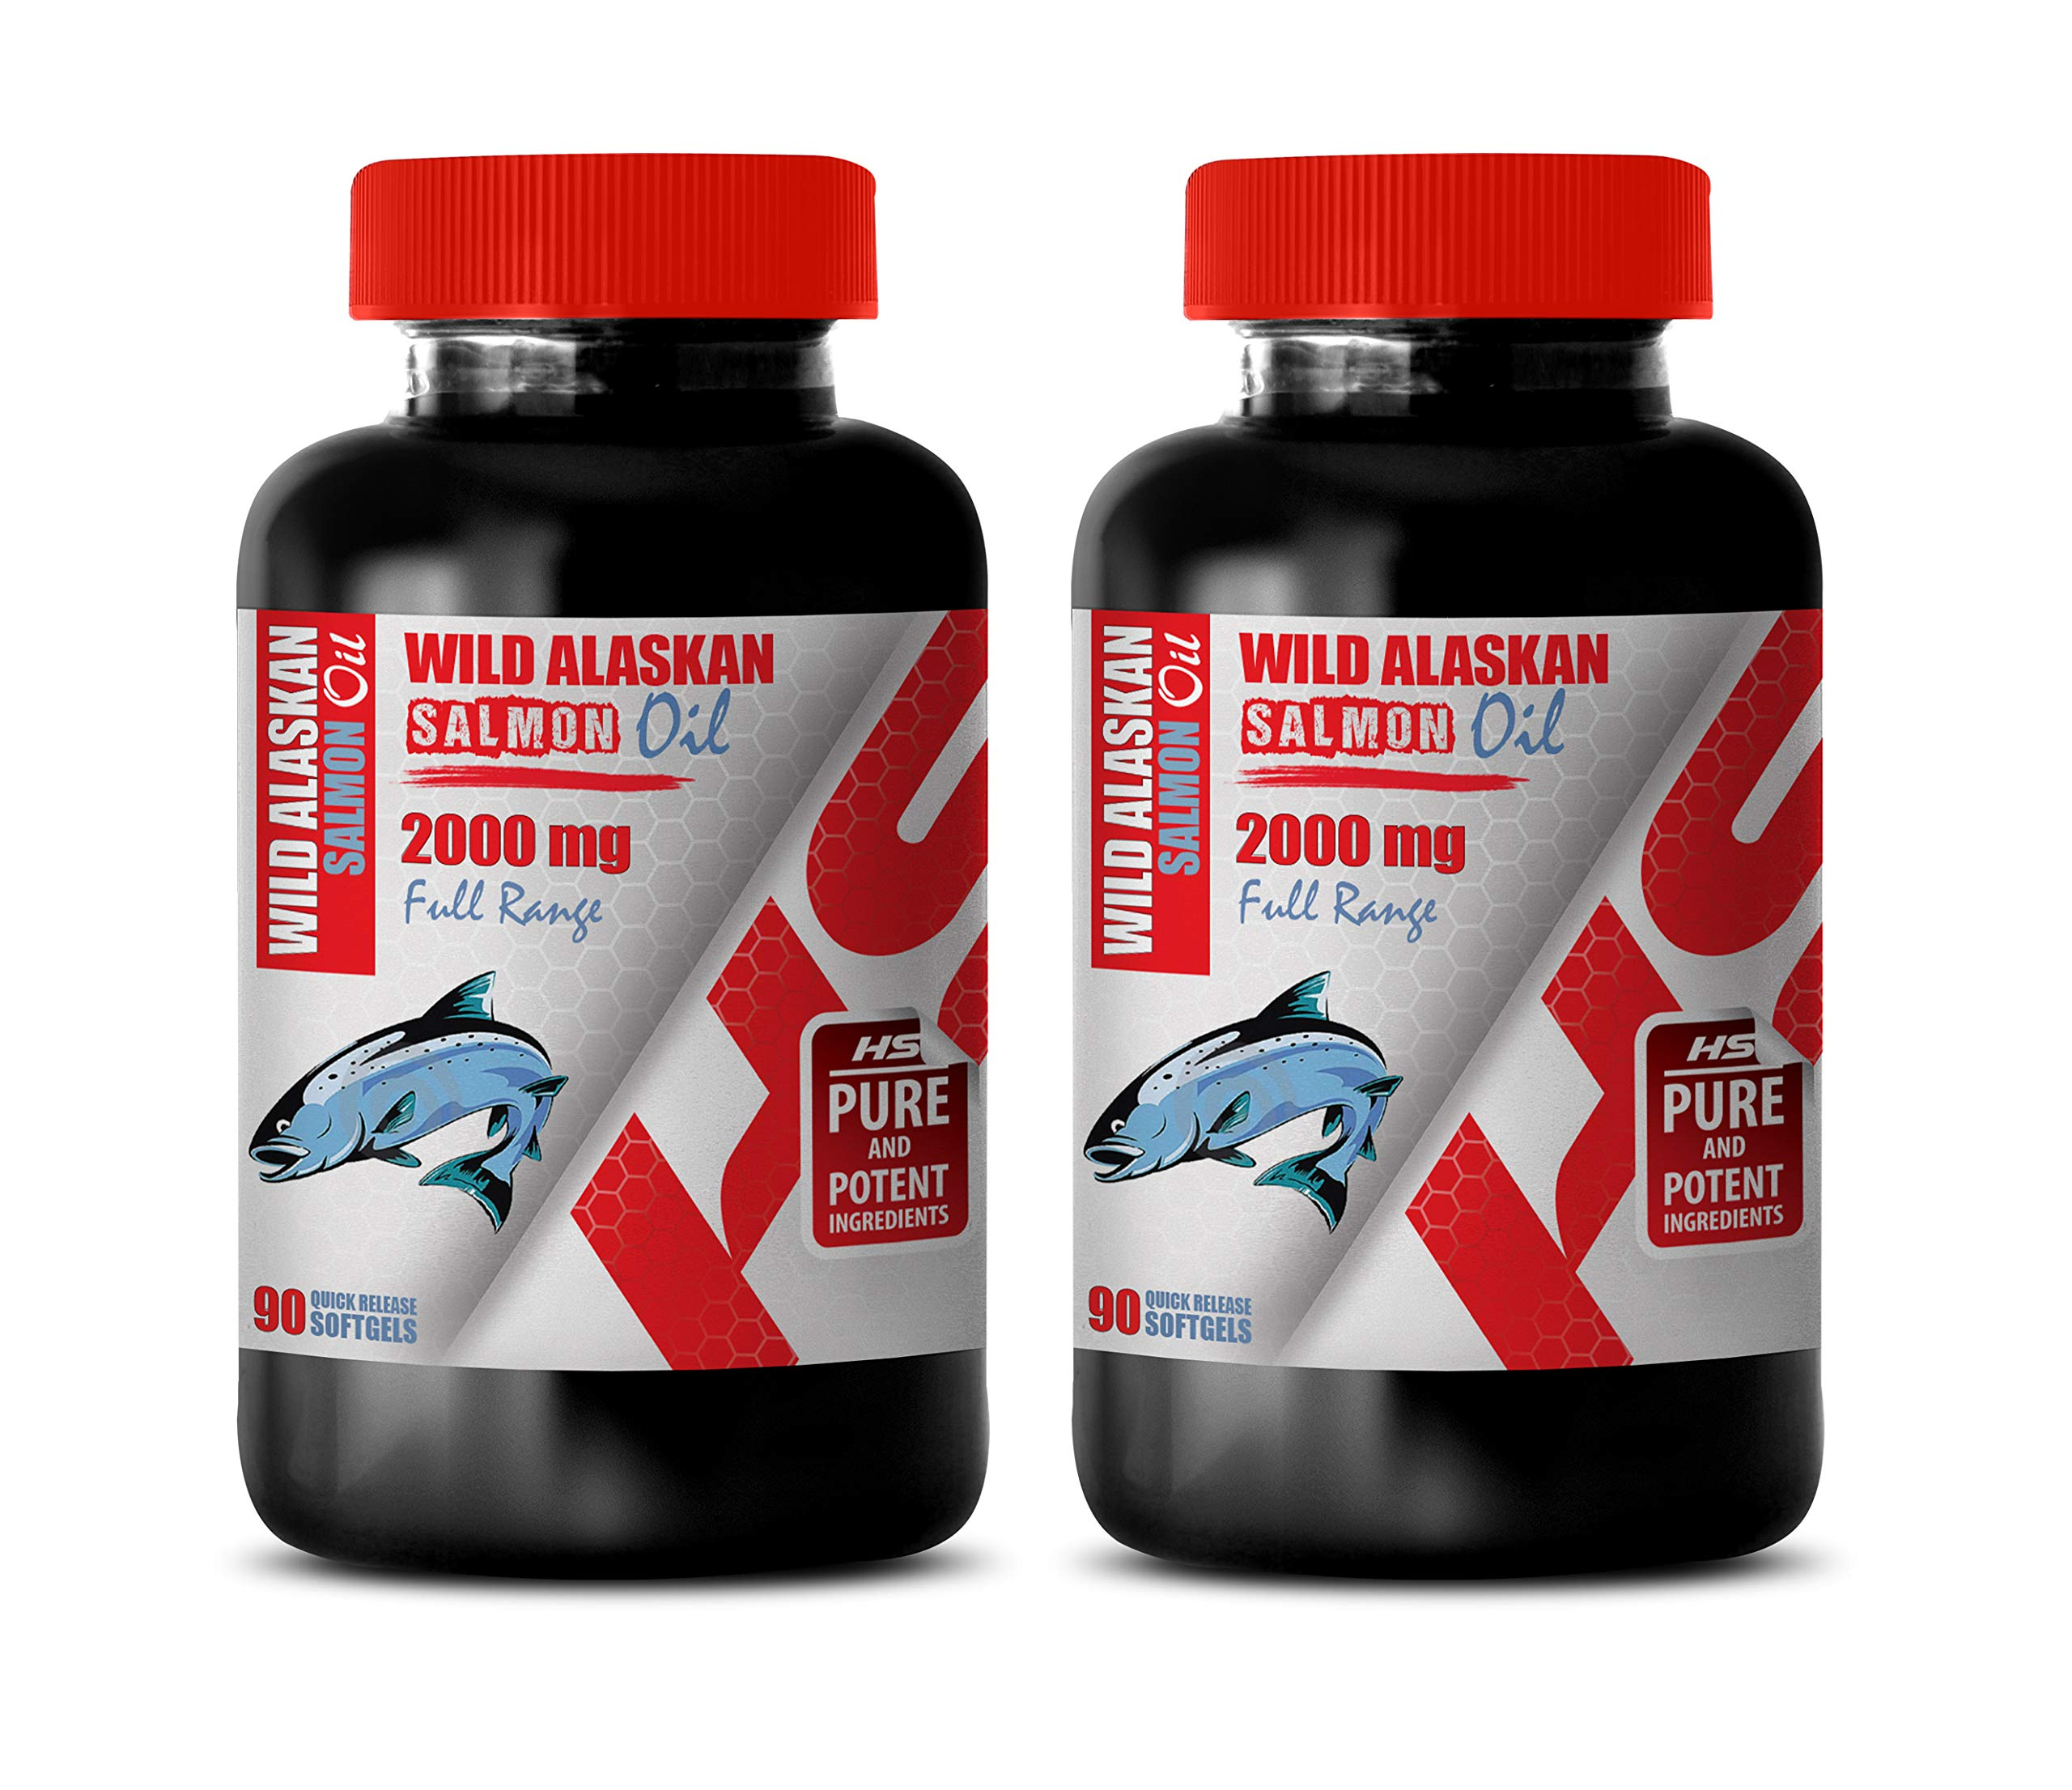 Support Brain Function - Wild Alaskan Salmon Oil 2000 Mg Full Range - Fish Oil with epa and dha - 2 Bottles 180 Softgels by Healthy Supplements LLC